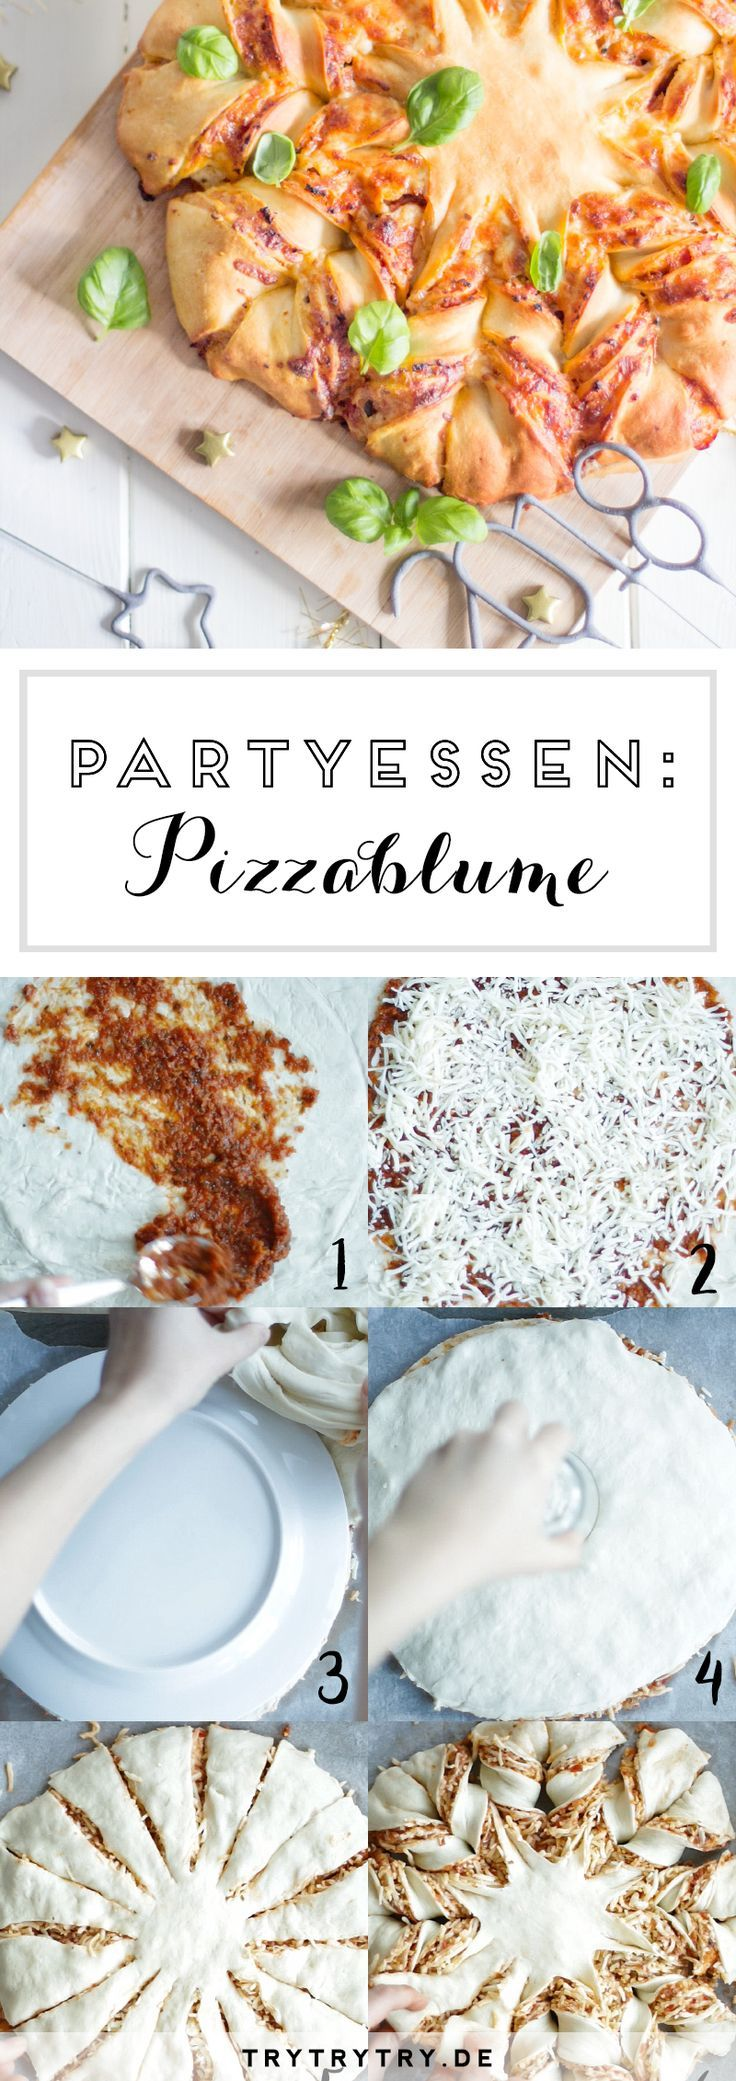 Pizzablume #appetizersforparty